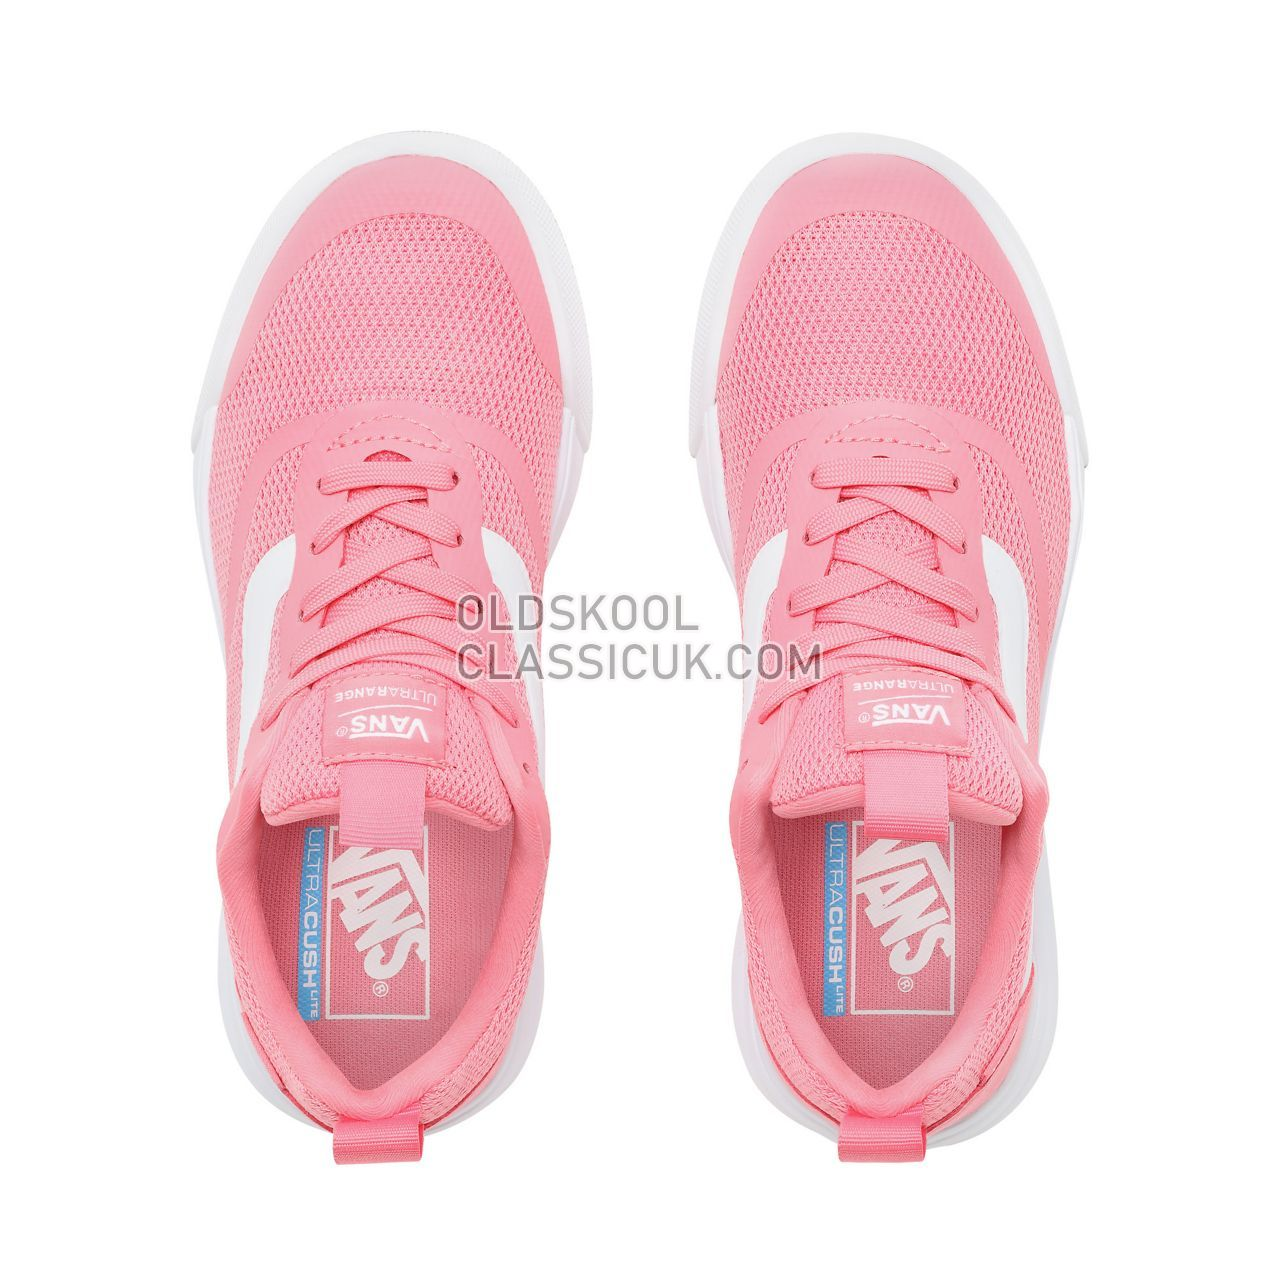 Vans Ultrarange Rapidweld Sneakers Womens Strawberry Pink VN0A3MVUUV6 Shoes